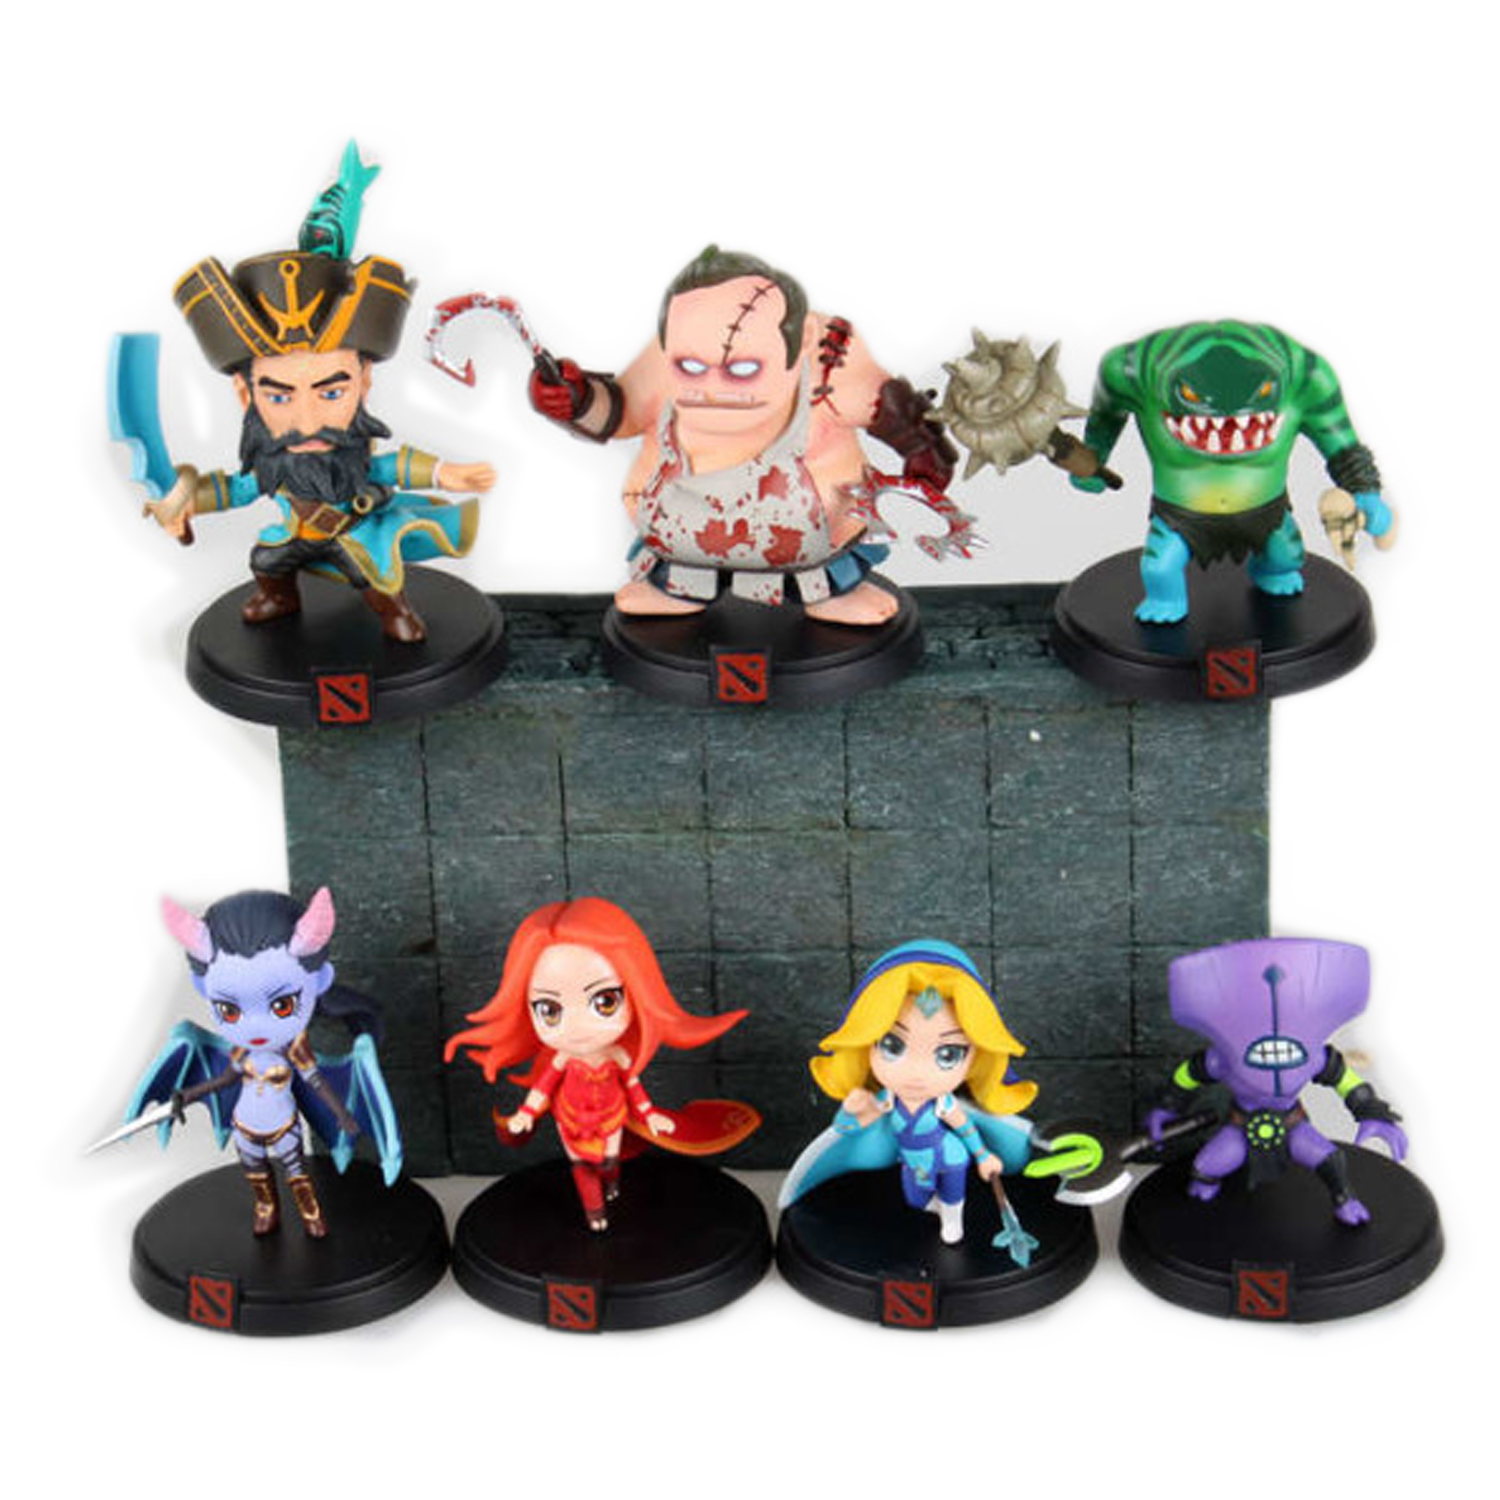 все цены на  Chanycore Serfdom DOTA 2 Game Figure Pudge Leviathan Crystal Maiden Lina Queen Kunkka Tidehunter PVC Action Figures dota2 Toys  в интернете